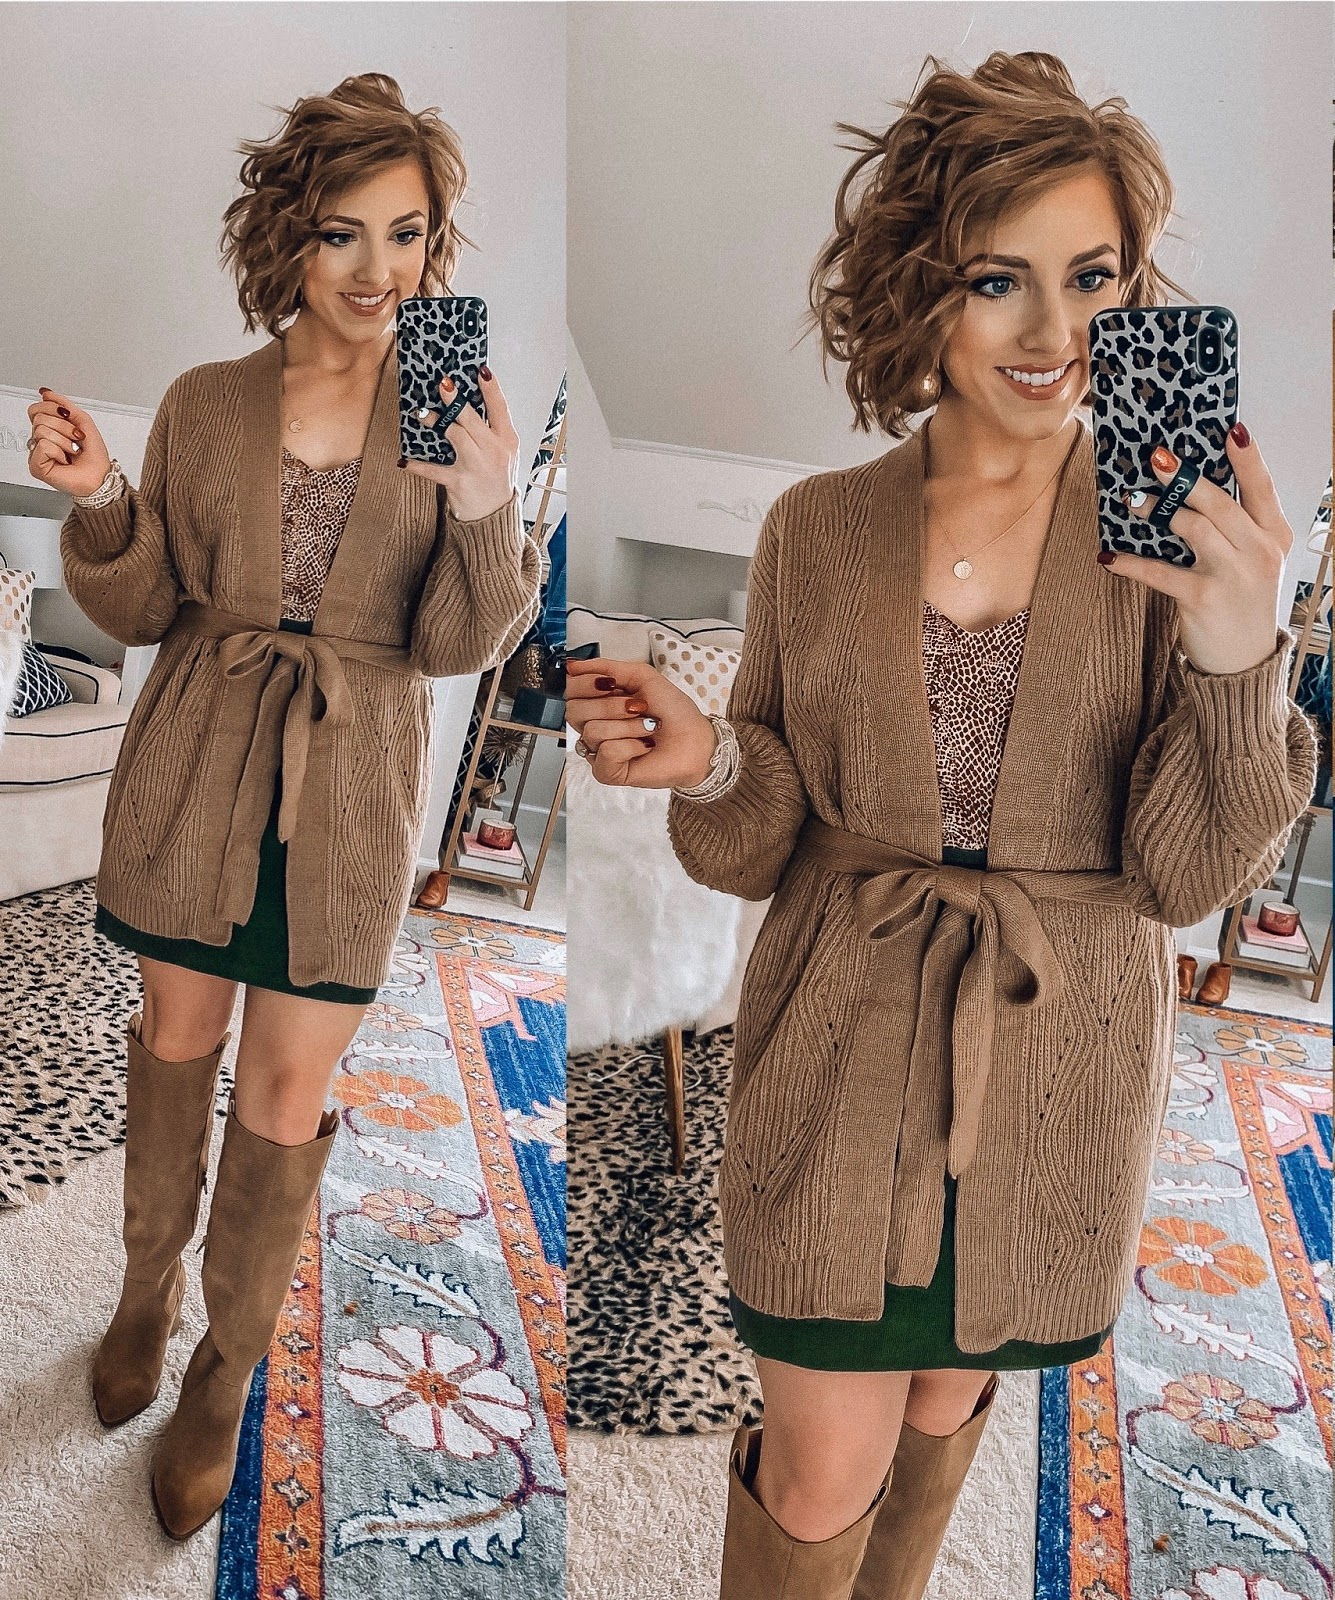 Recent Target Style Finds: Sweaters, Cardigans, Tops, Booties, Accessories & More! - Something Delightful Blog #fallstyle #affordablestyle #targetstyle